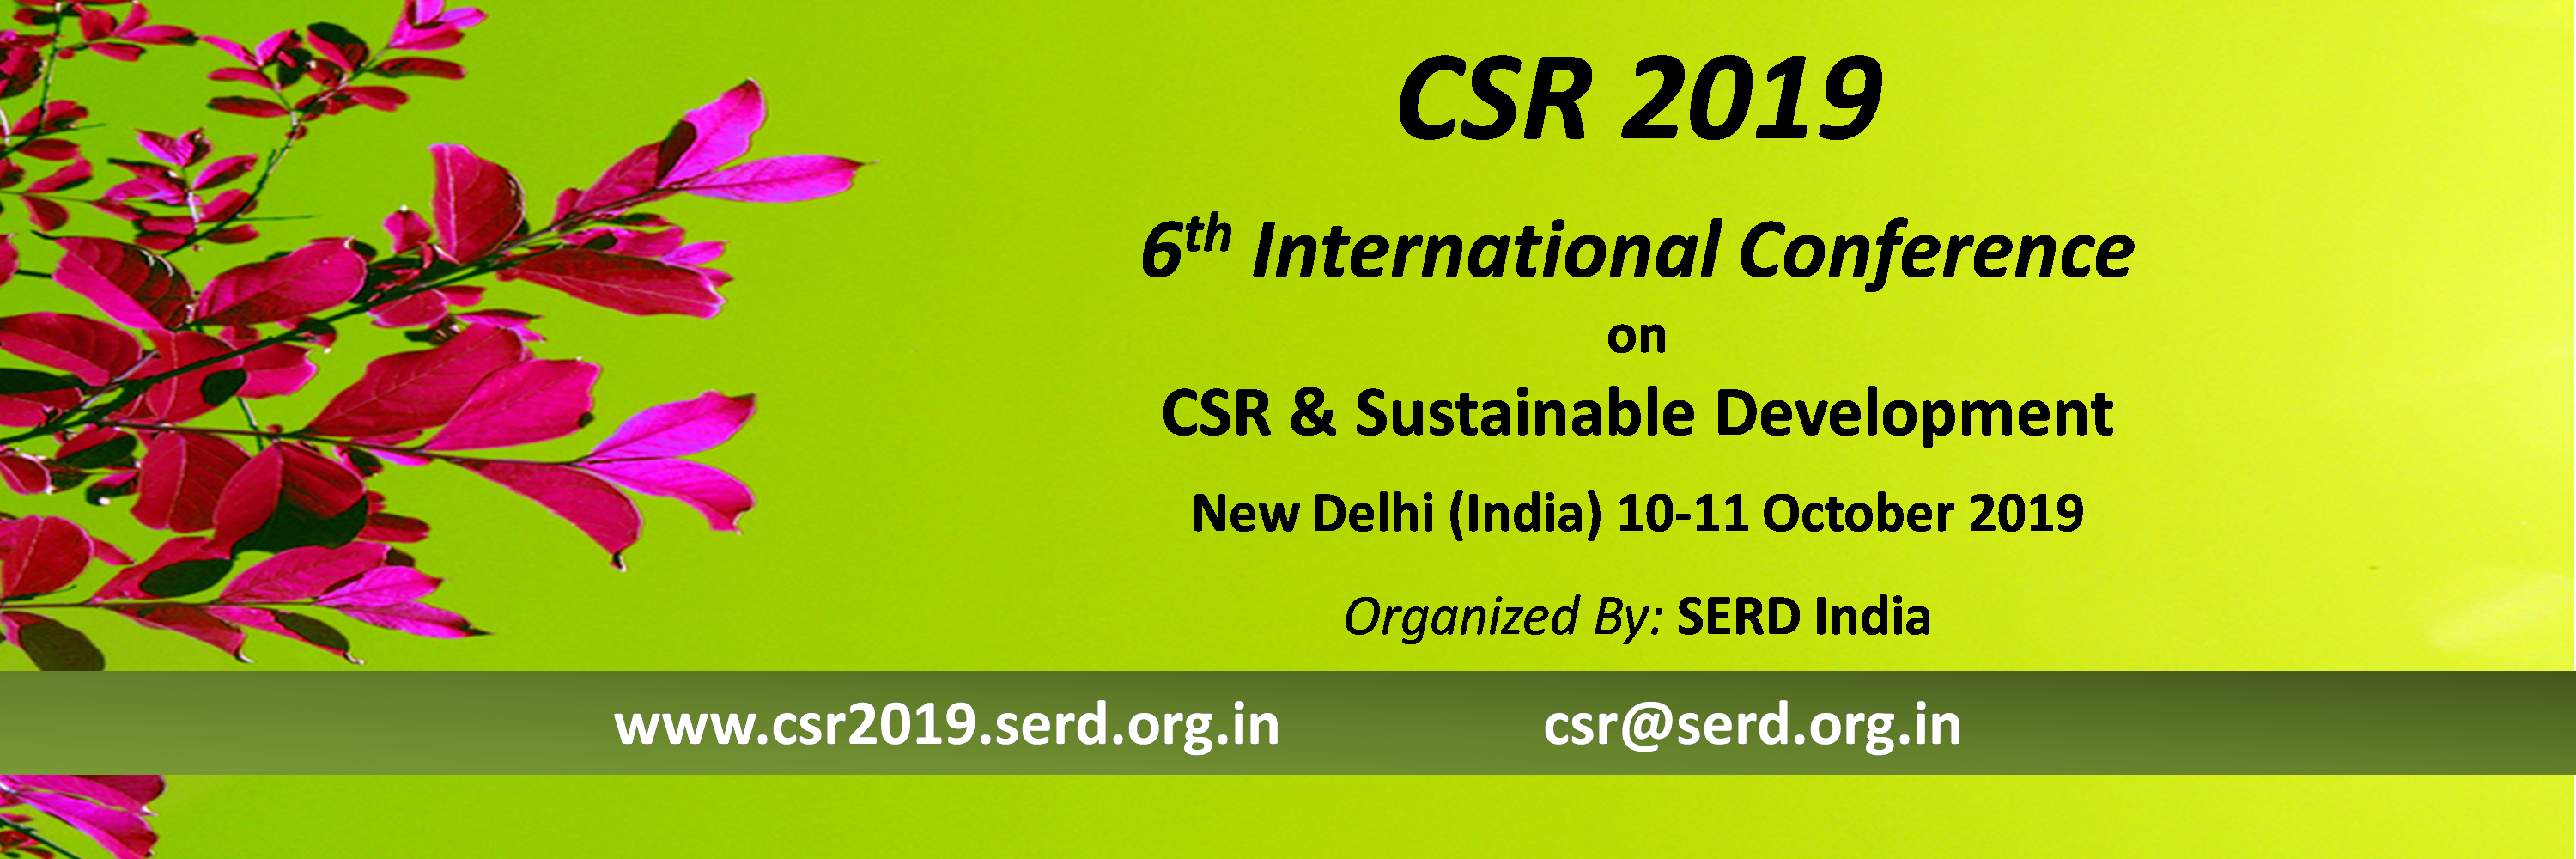 CSR 2019 Conference Organisers and Sponsors